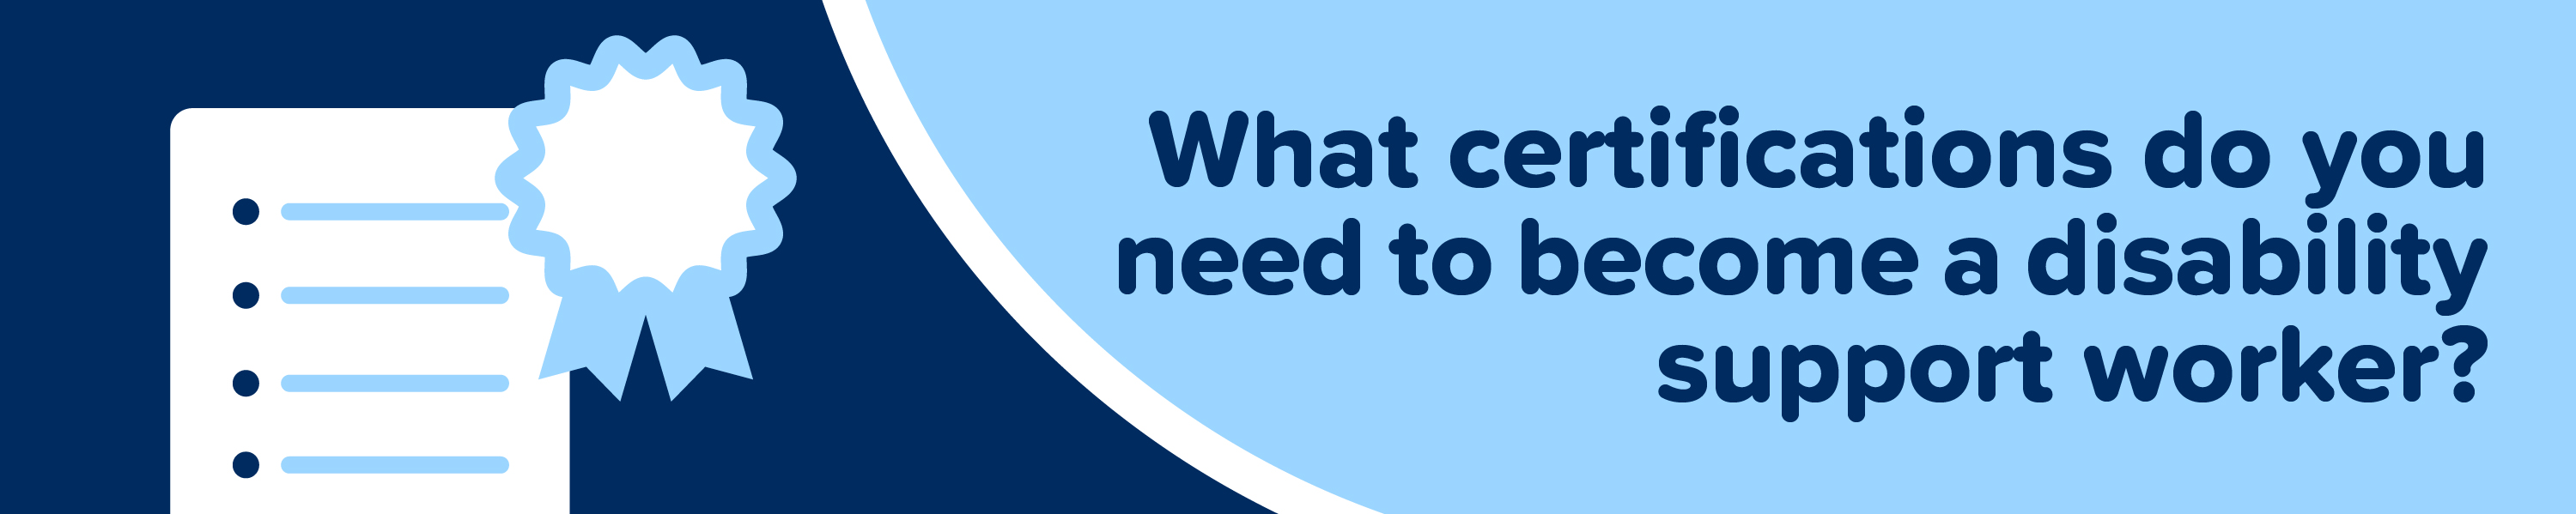 What certifications do you need to become a disability support worker?